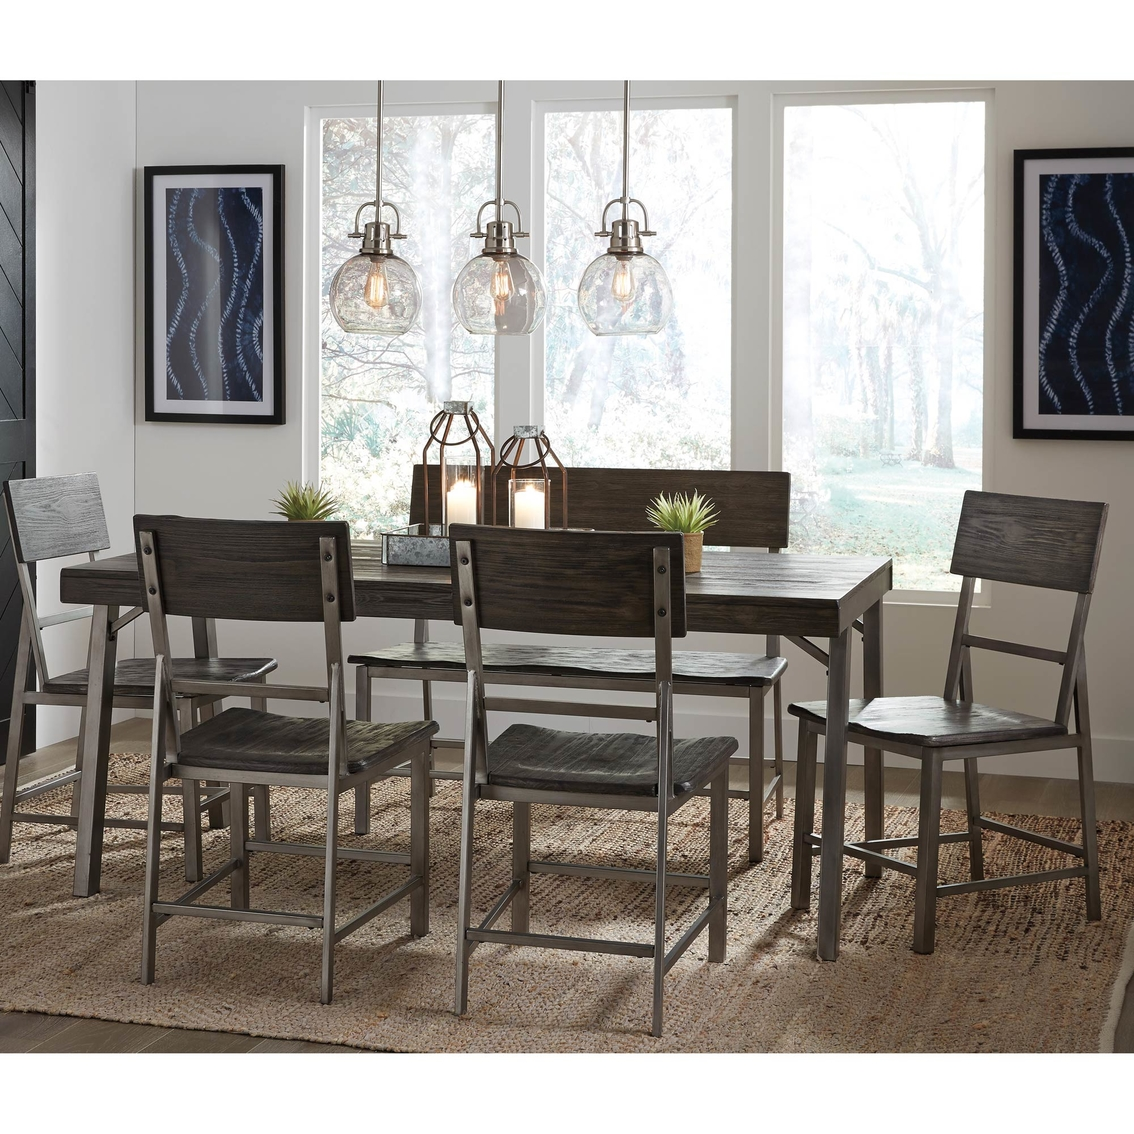 Signature Design By Ashley Raventown 6 Pc. Dining Set